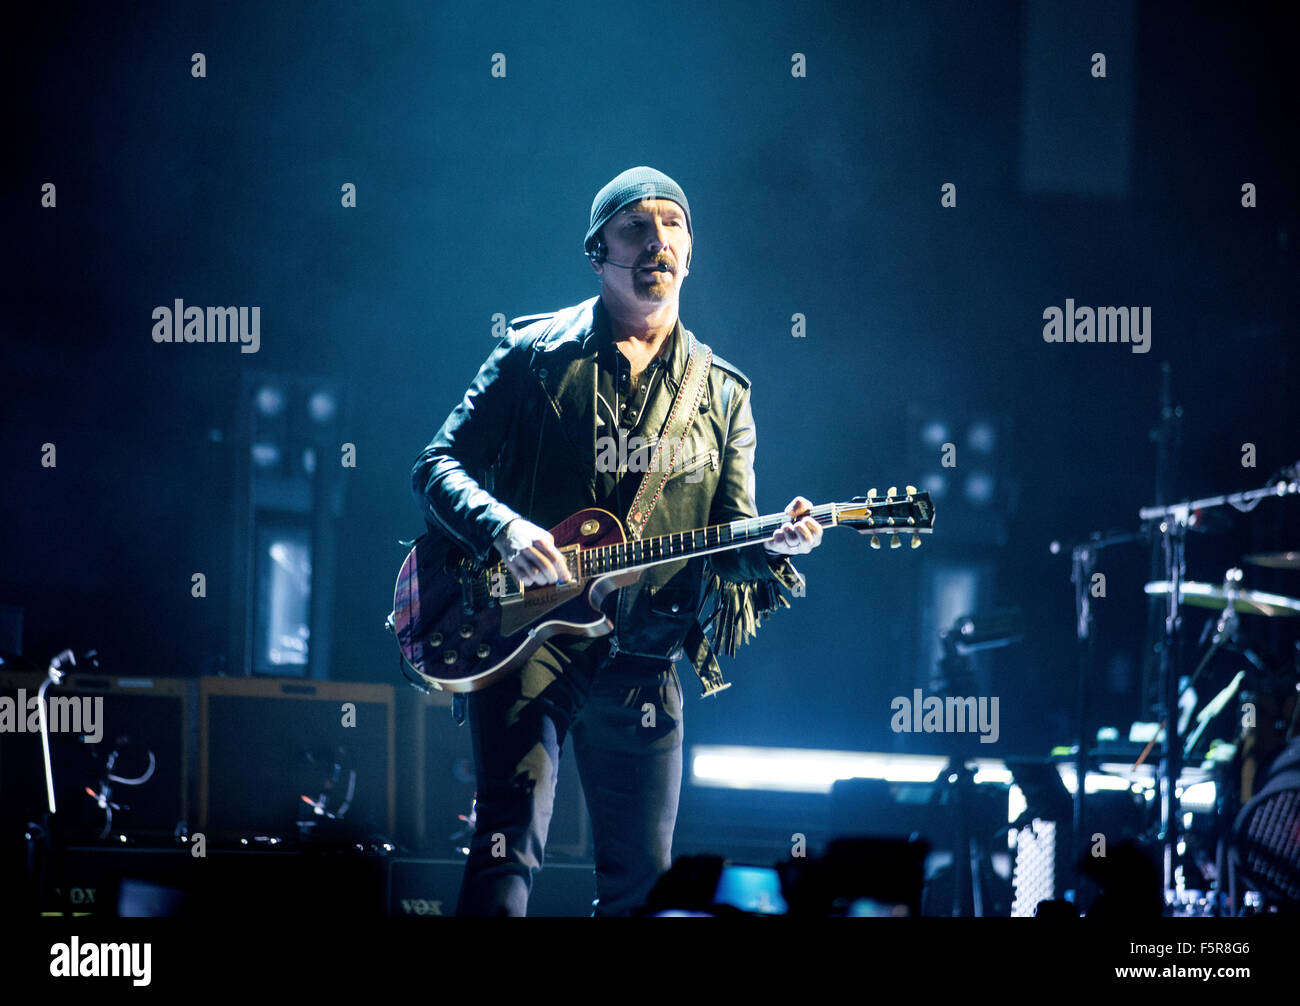 The Edge of U2 performs at the SSE Hydro as part of their iNNOCENCE + eXPERIENCE tour on November 6, 2015 in Glasgow, - Stock Image